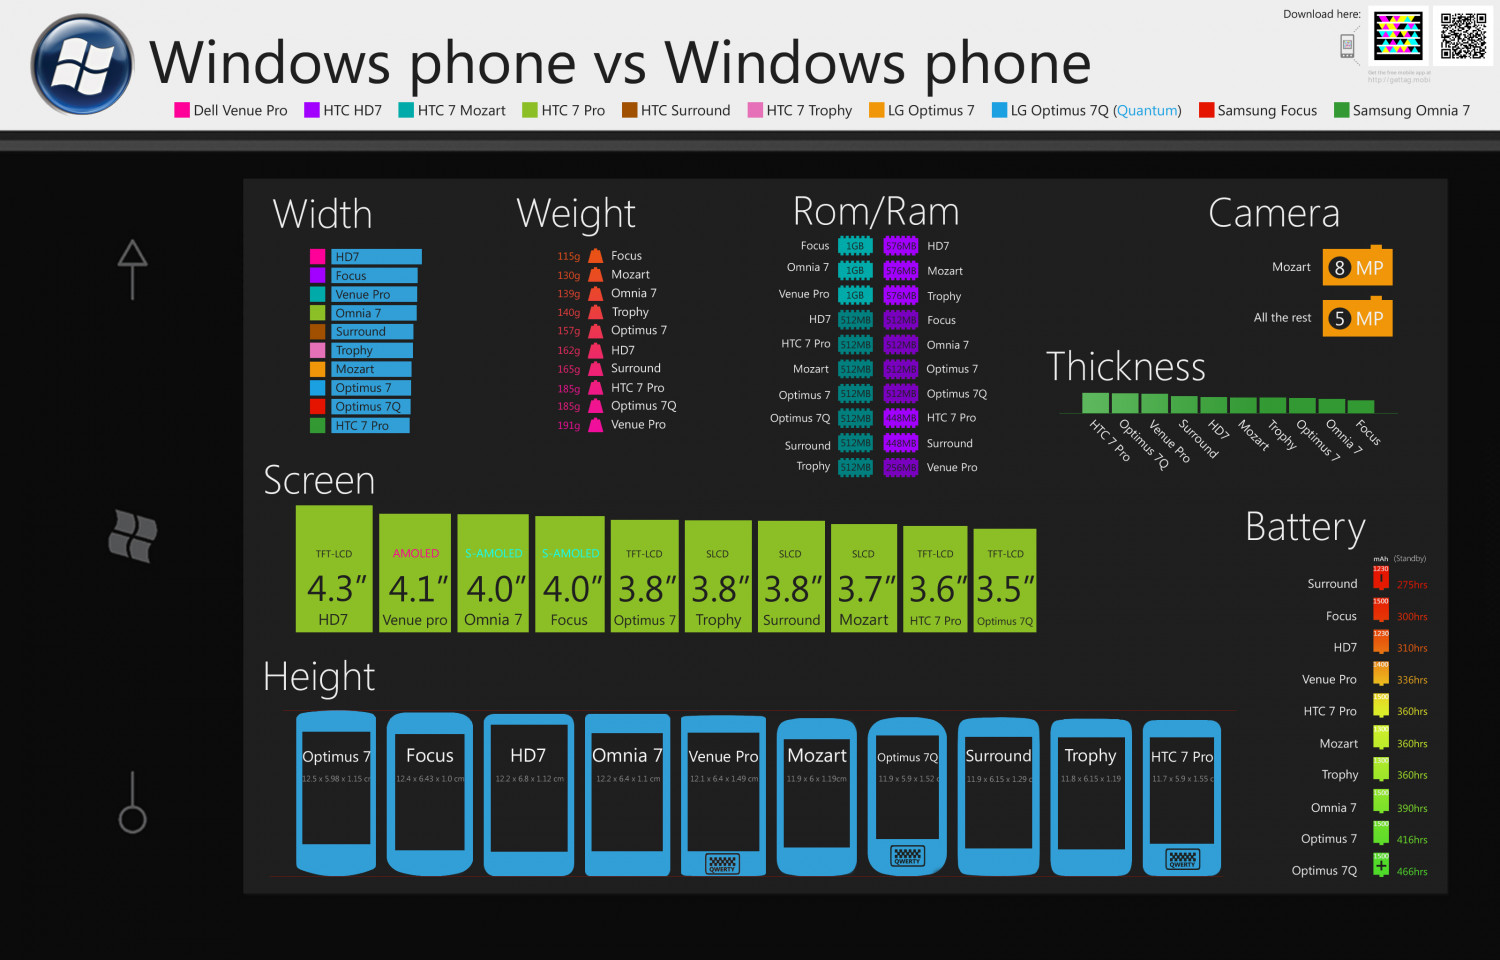 Windows Phone 7 vs Windows Phone 7 Infographic